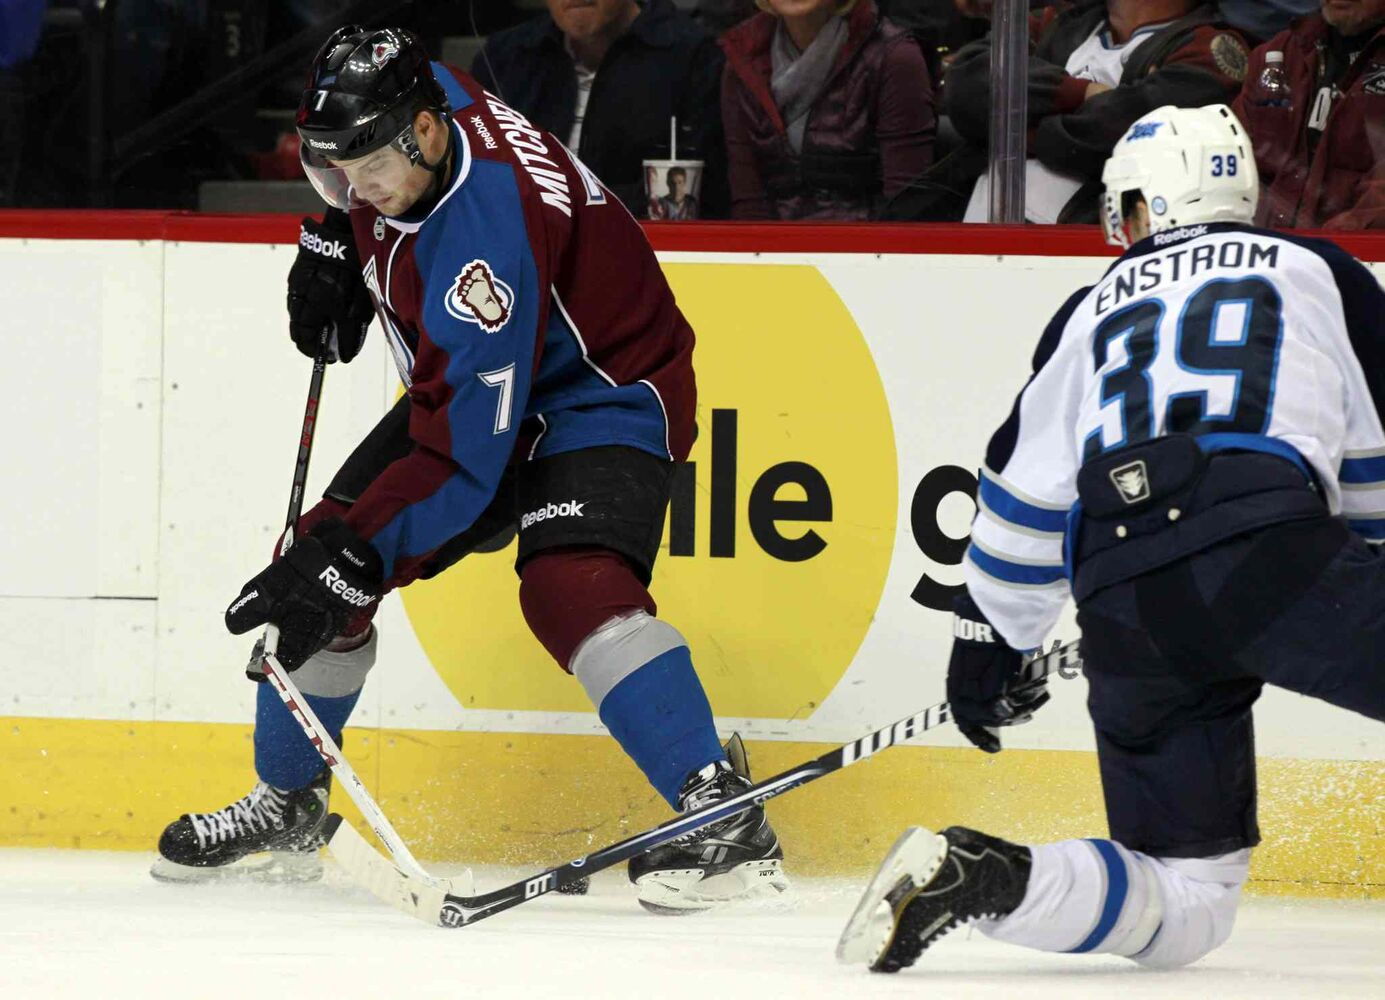 Colorado Avalanche center John Mitchell (left) has his stick break while trying to clear the puck along the boards as he battles with Tobias Enstrom in the second period. (David Zalubowski / The Associated Press)